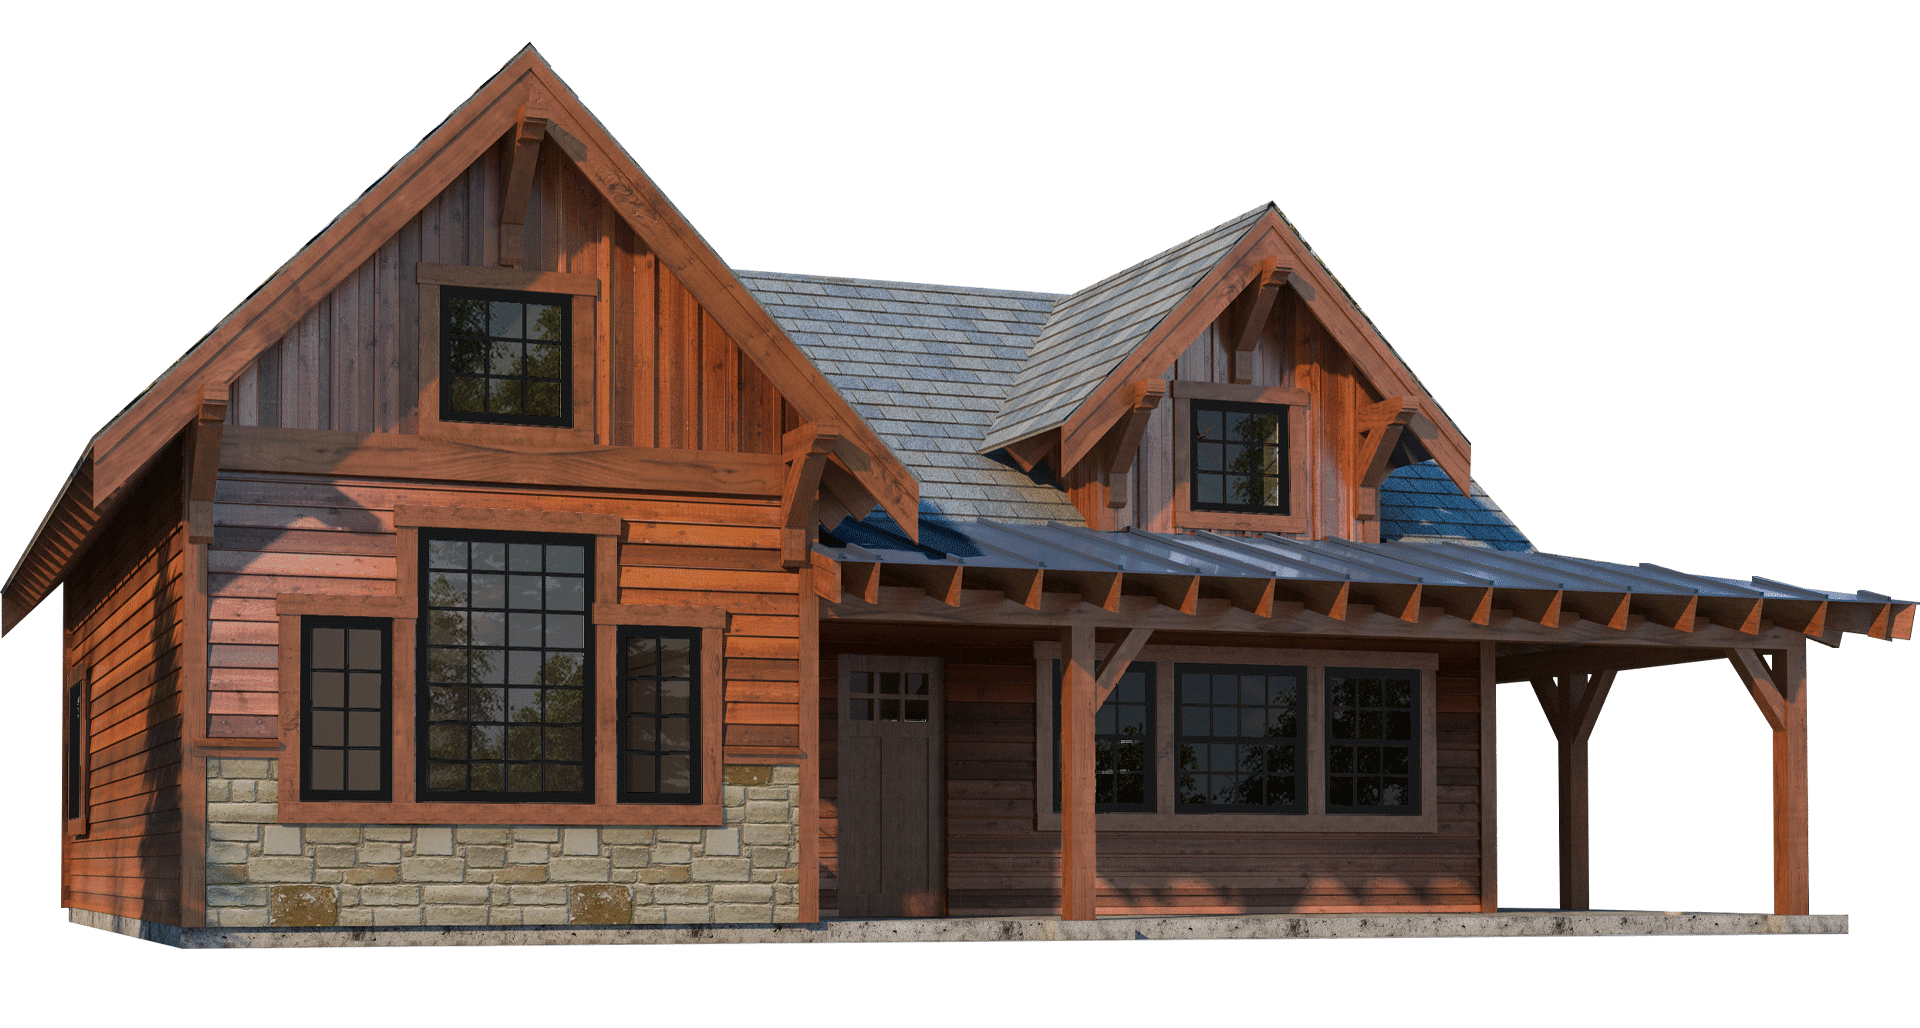 Rogue Cabin Kit 2 Bedroom Cabin Plan Dc Structures In 2020 Cabin Kits Cabin Cabin Plans